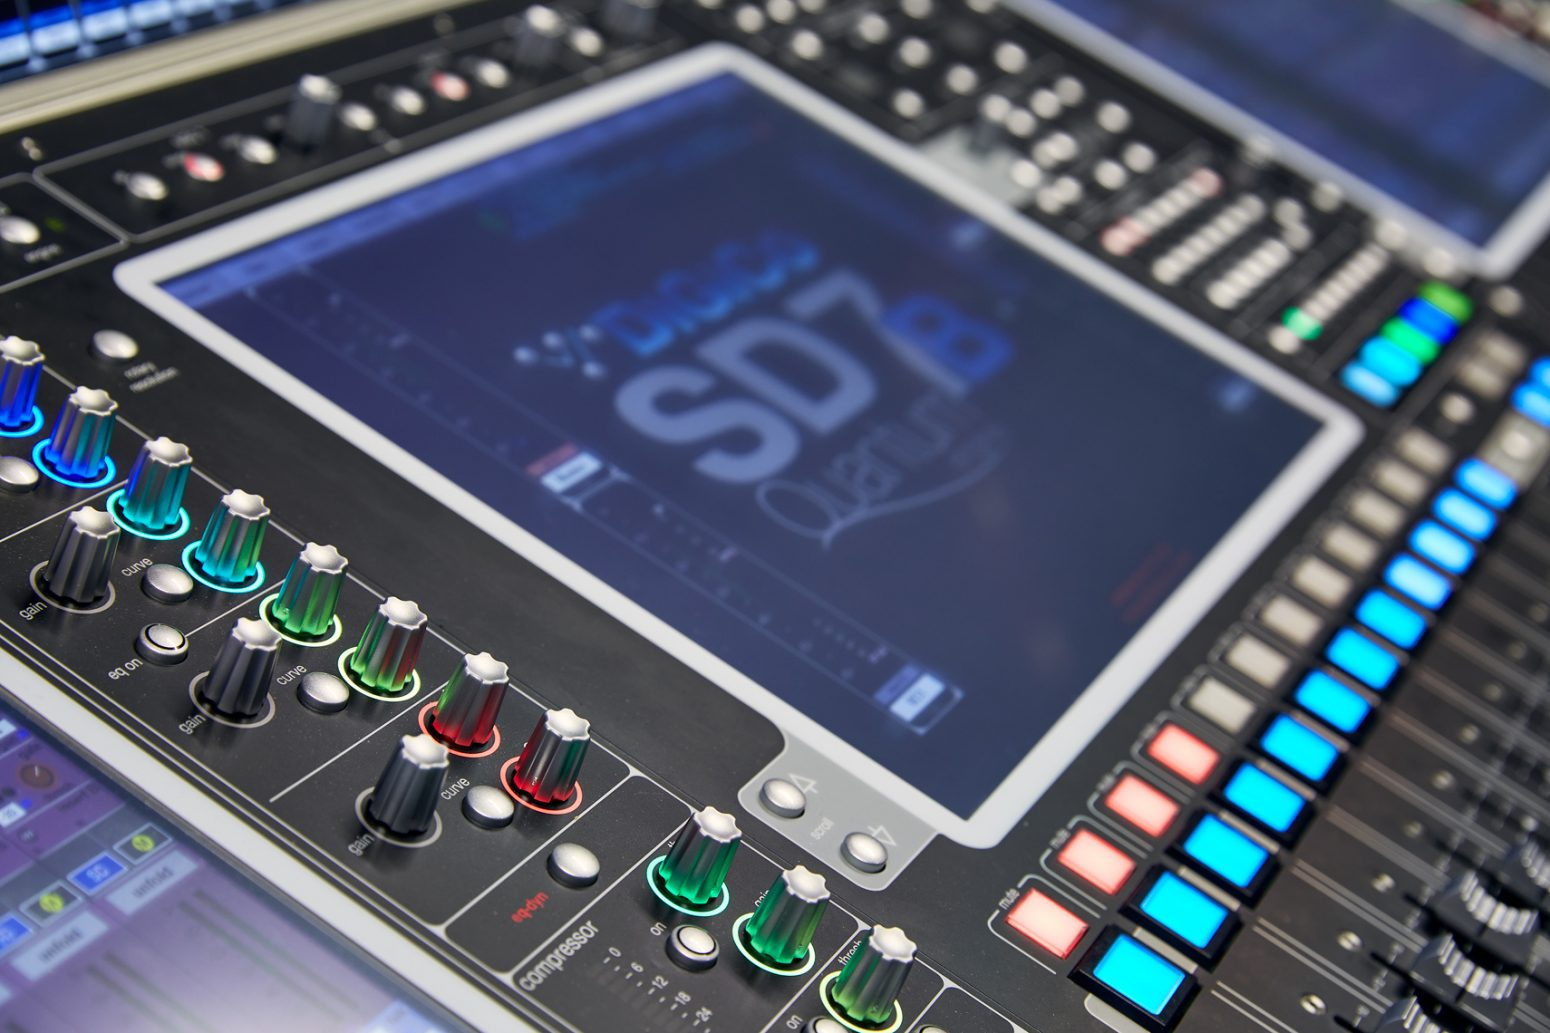 The DiGiCo Quantum 7 installed at Bellevue Baptist Church.